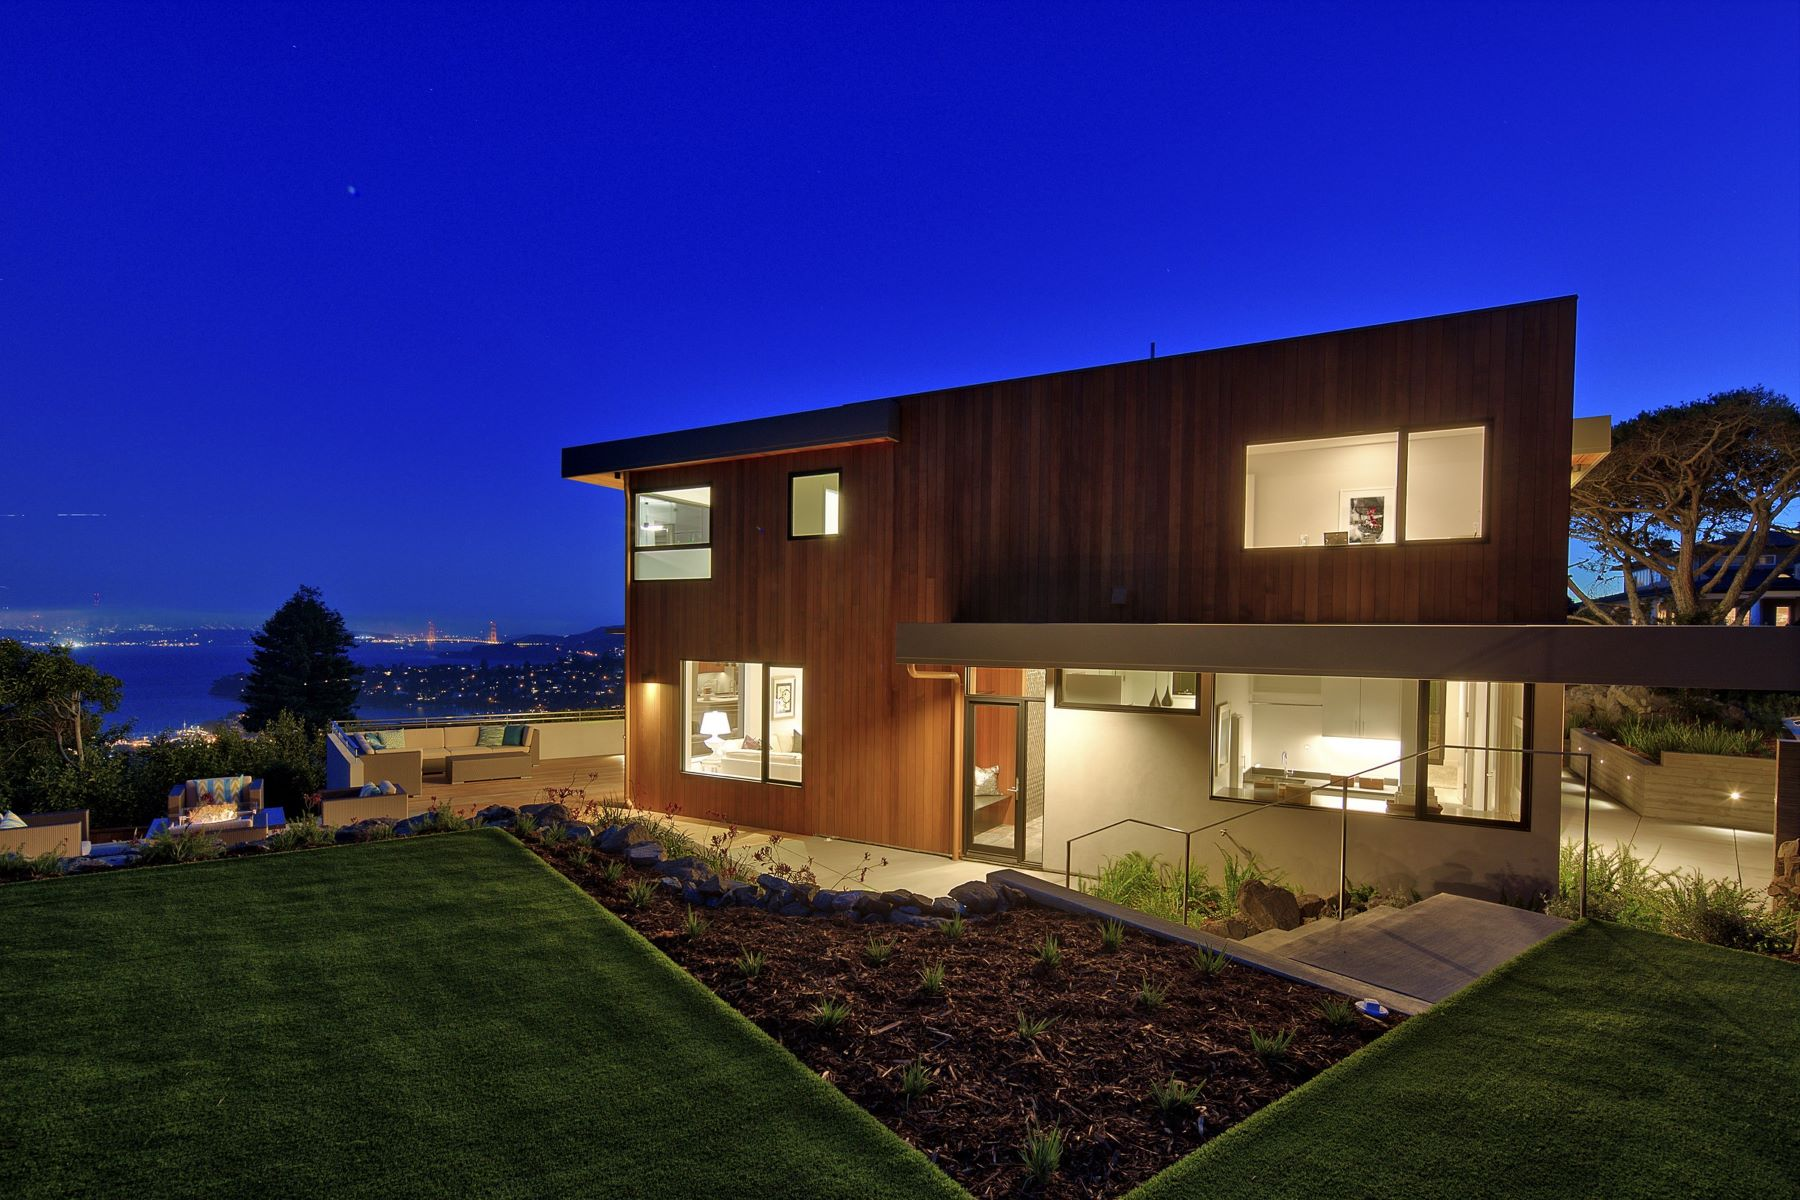 Single Family Home for Sale at Spectacular Ultra Contemporary Home 86 Sugarloaf Dr Tiburon, California 94920 United States